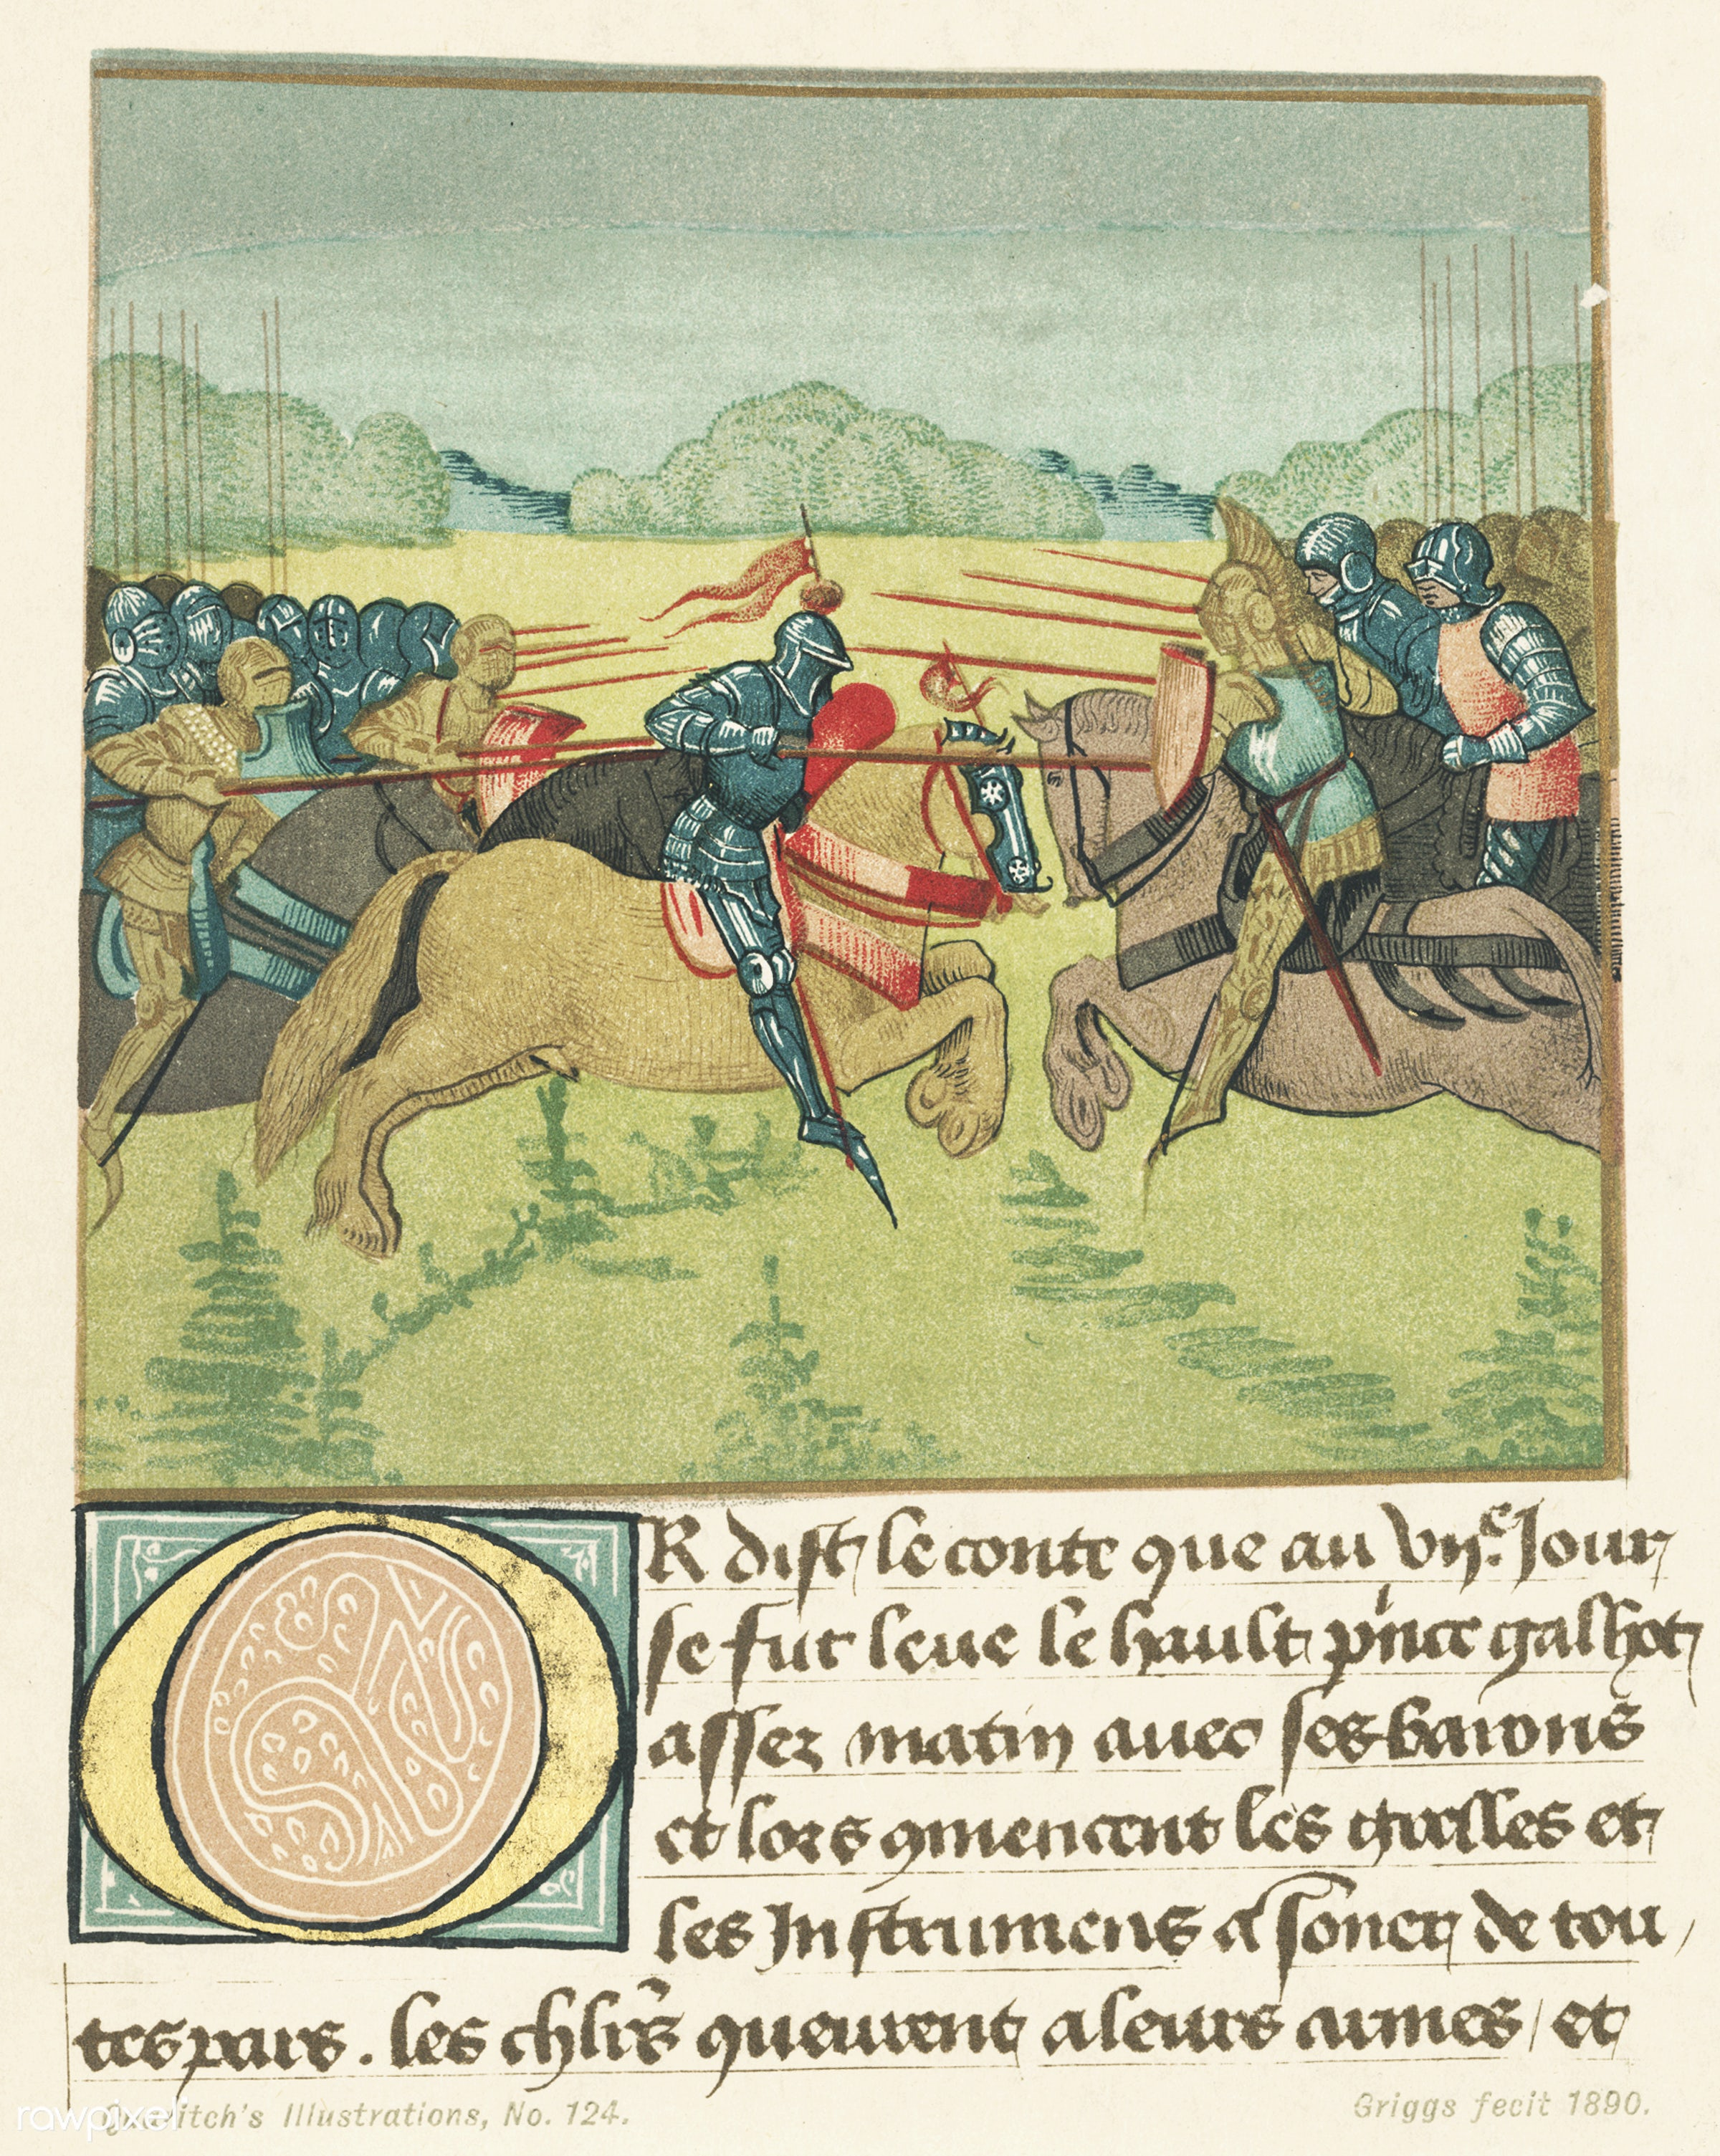 Vintage illustrations of Palamedes in the tournament of Soreloys and Lancelot and Tristan in the tournament at Louvezep...